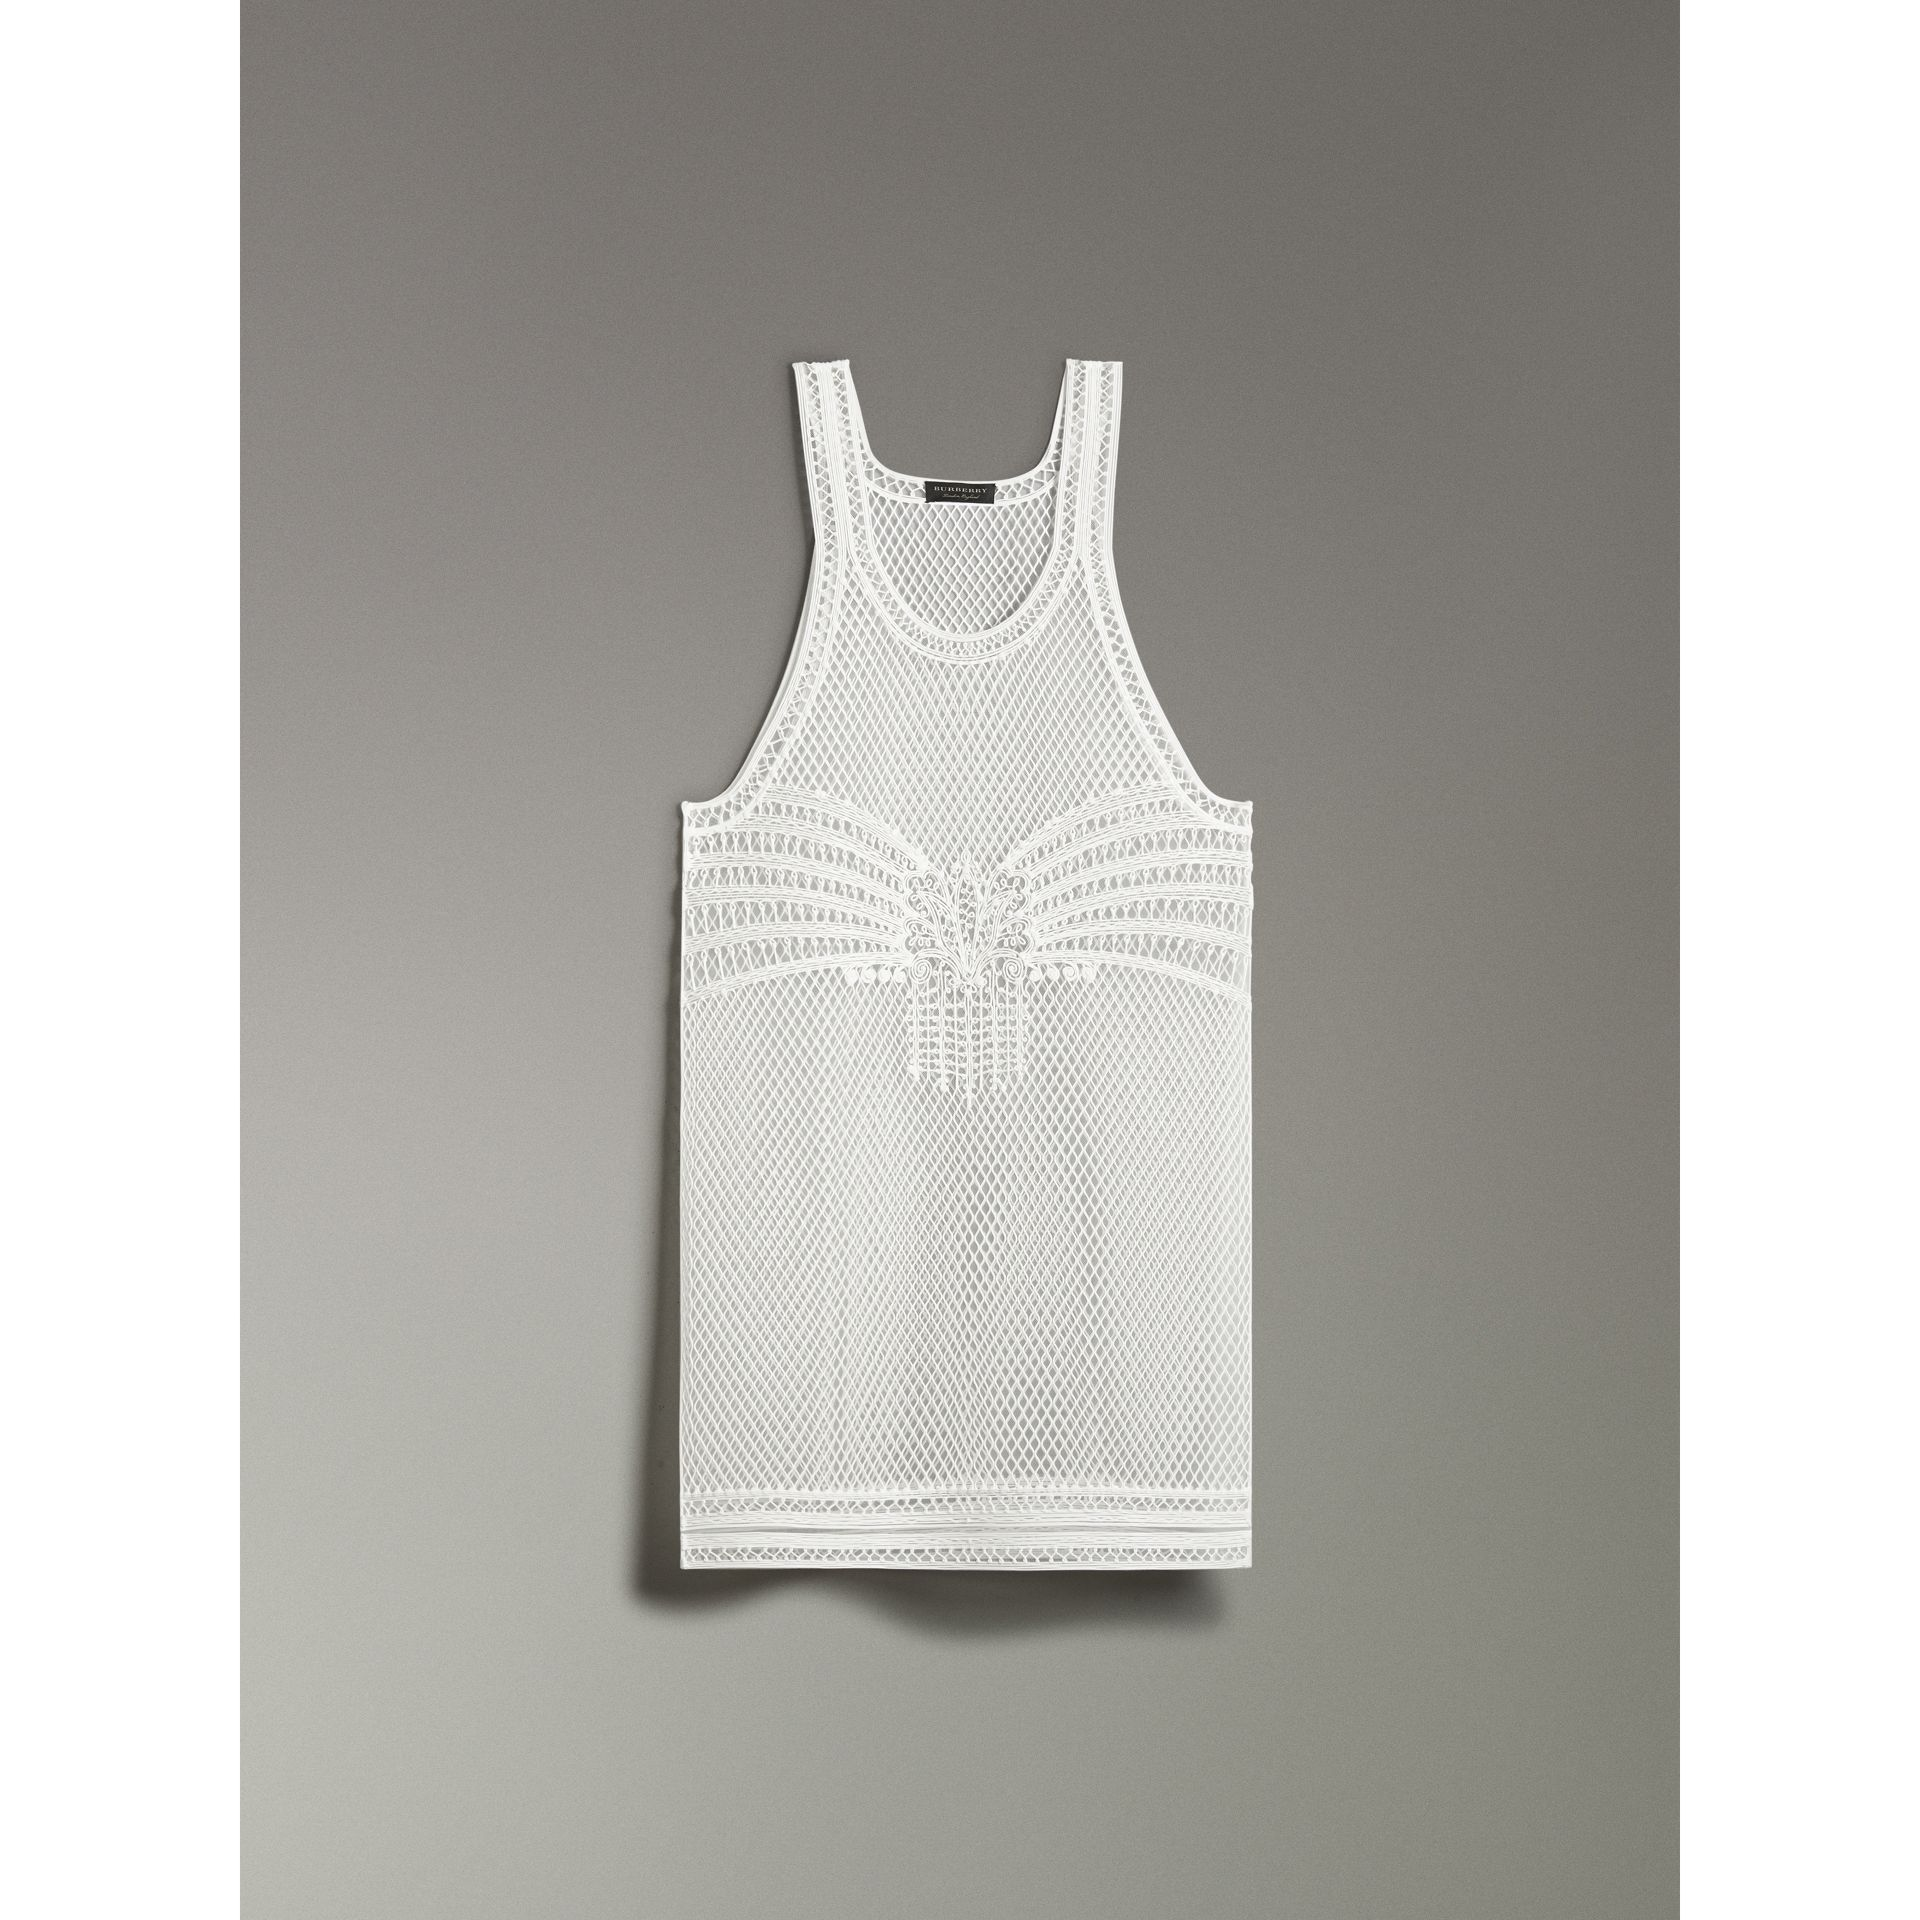 Silicone Lace Vest in White - Women | Burberry - gallery image 3